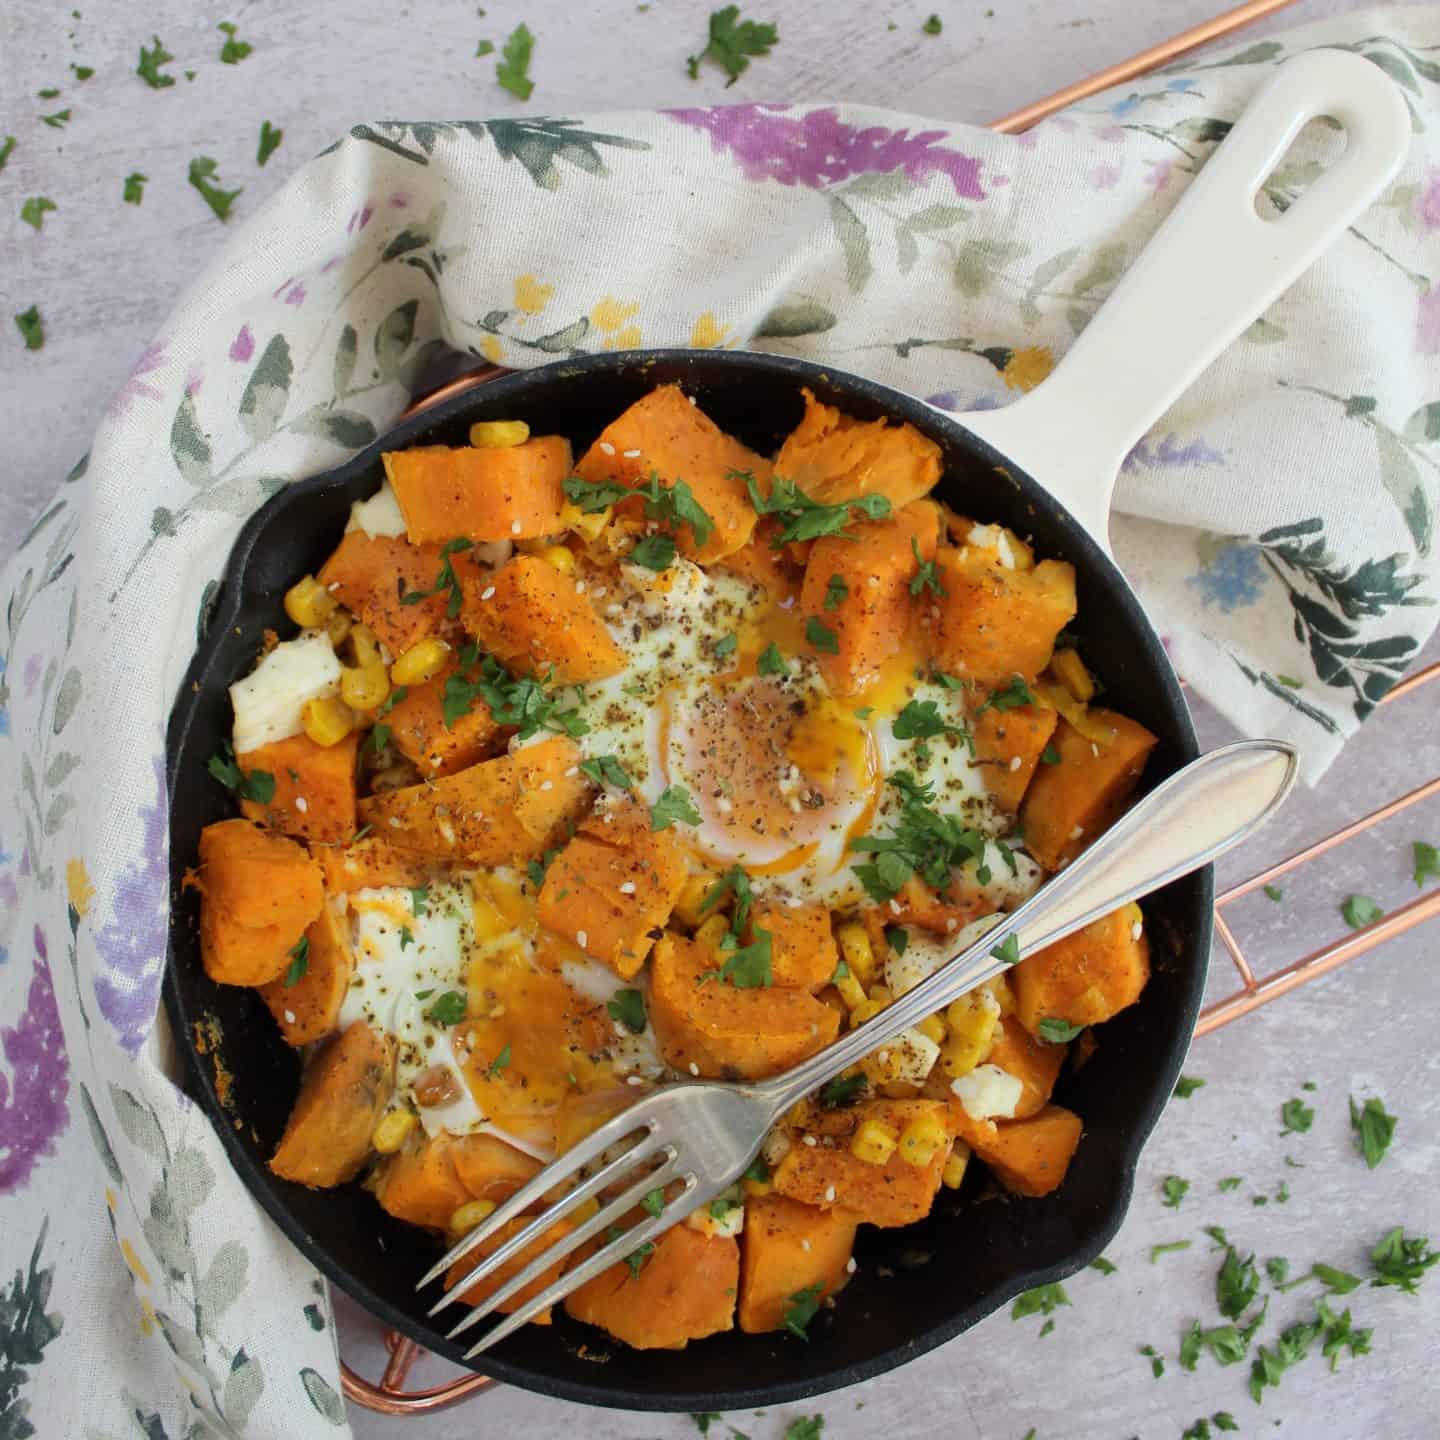 GLUTEN FREE FETA AND SWEET POTATO HASH RECIPE